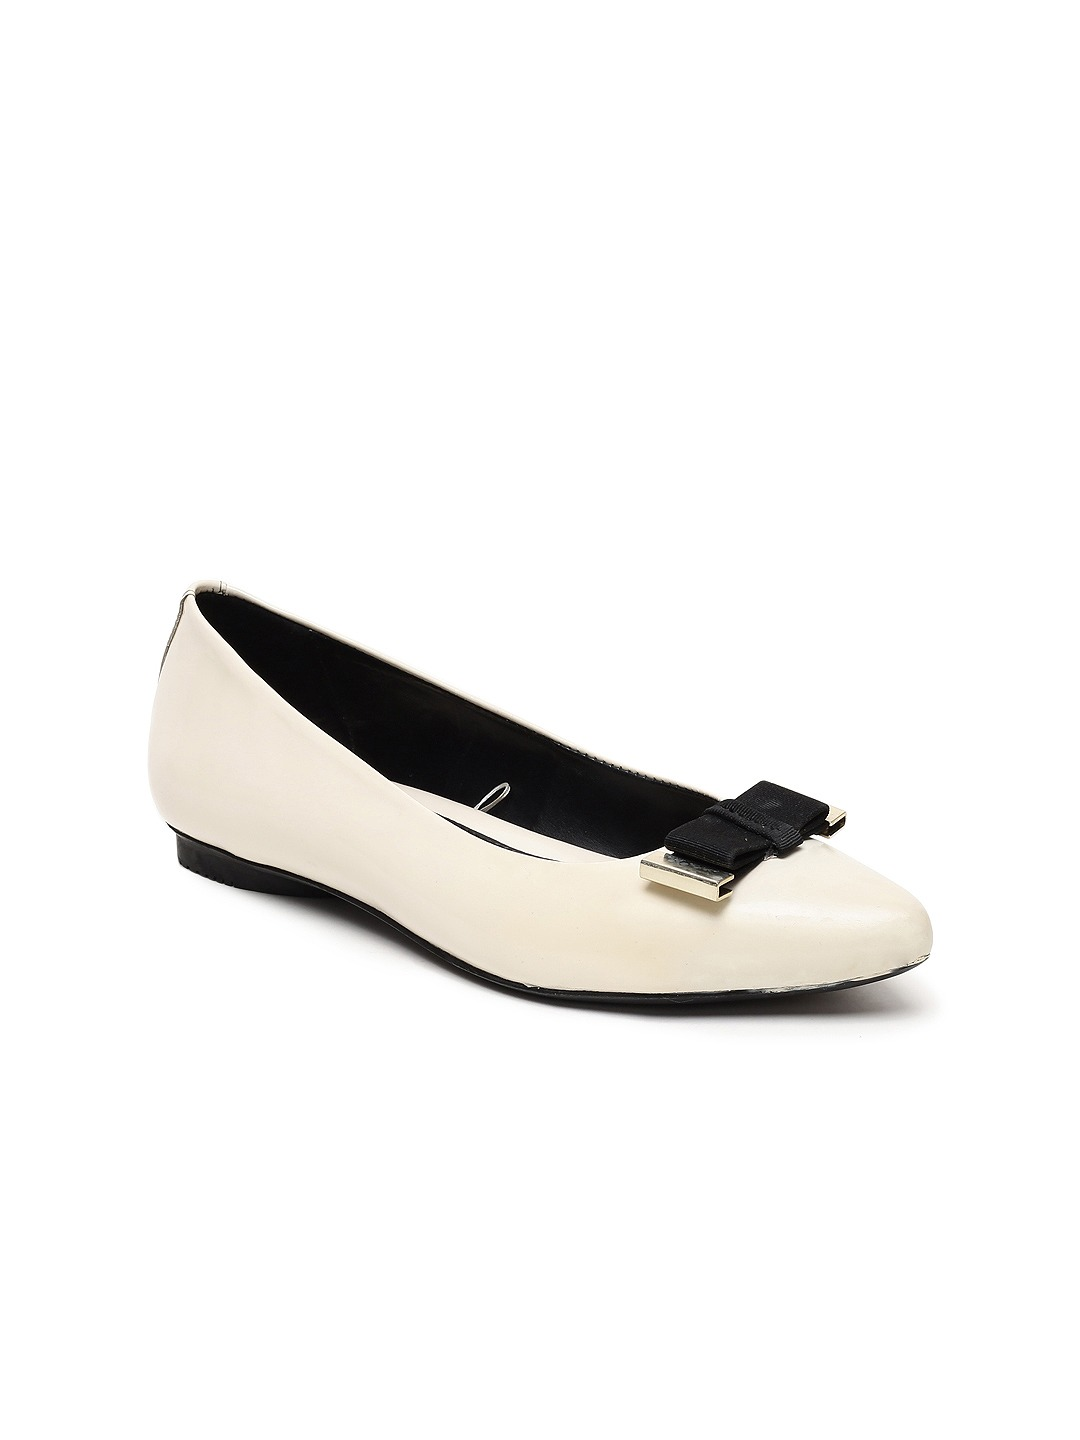 White Solid Leather Ballerinas